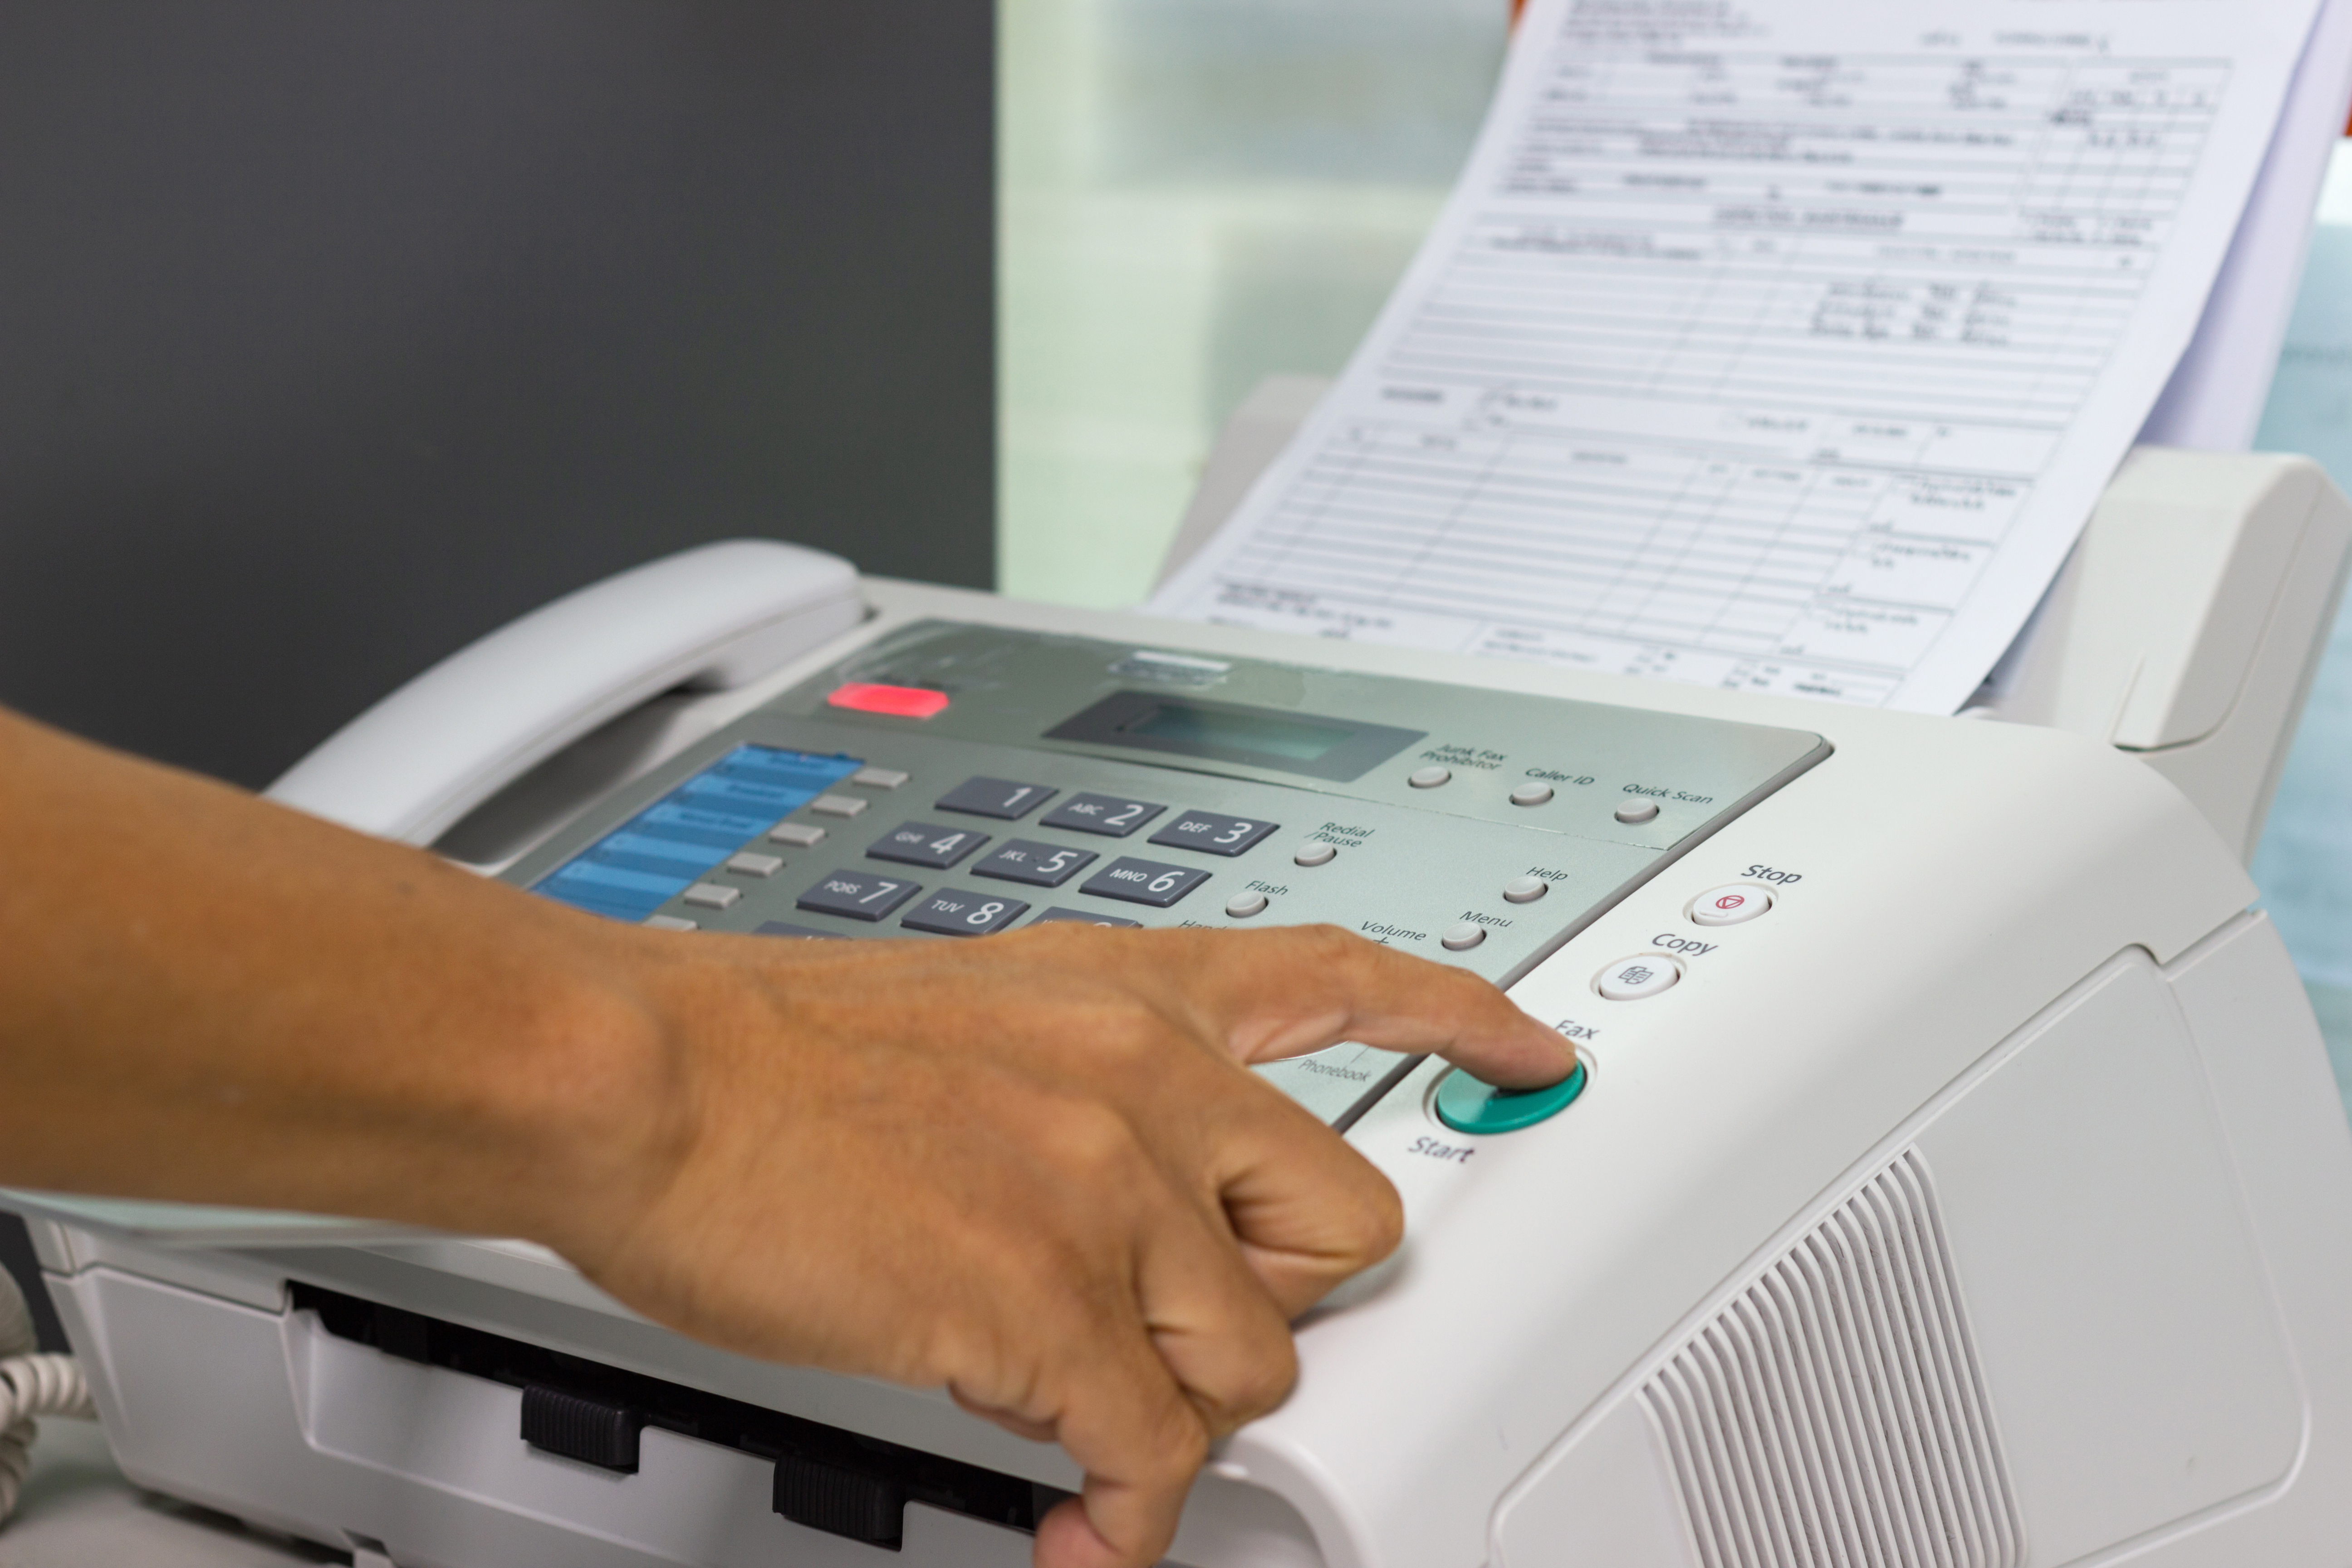 How to Check if a Printer Has Run out of Ink | Career Trend